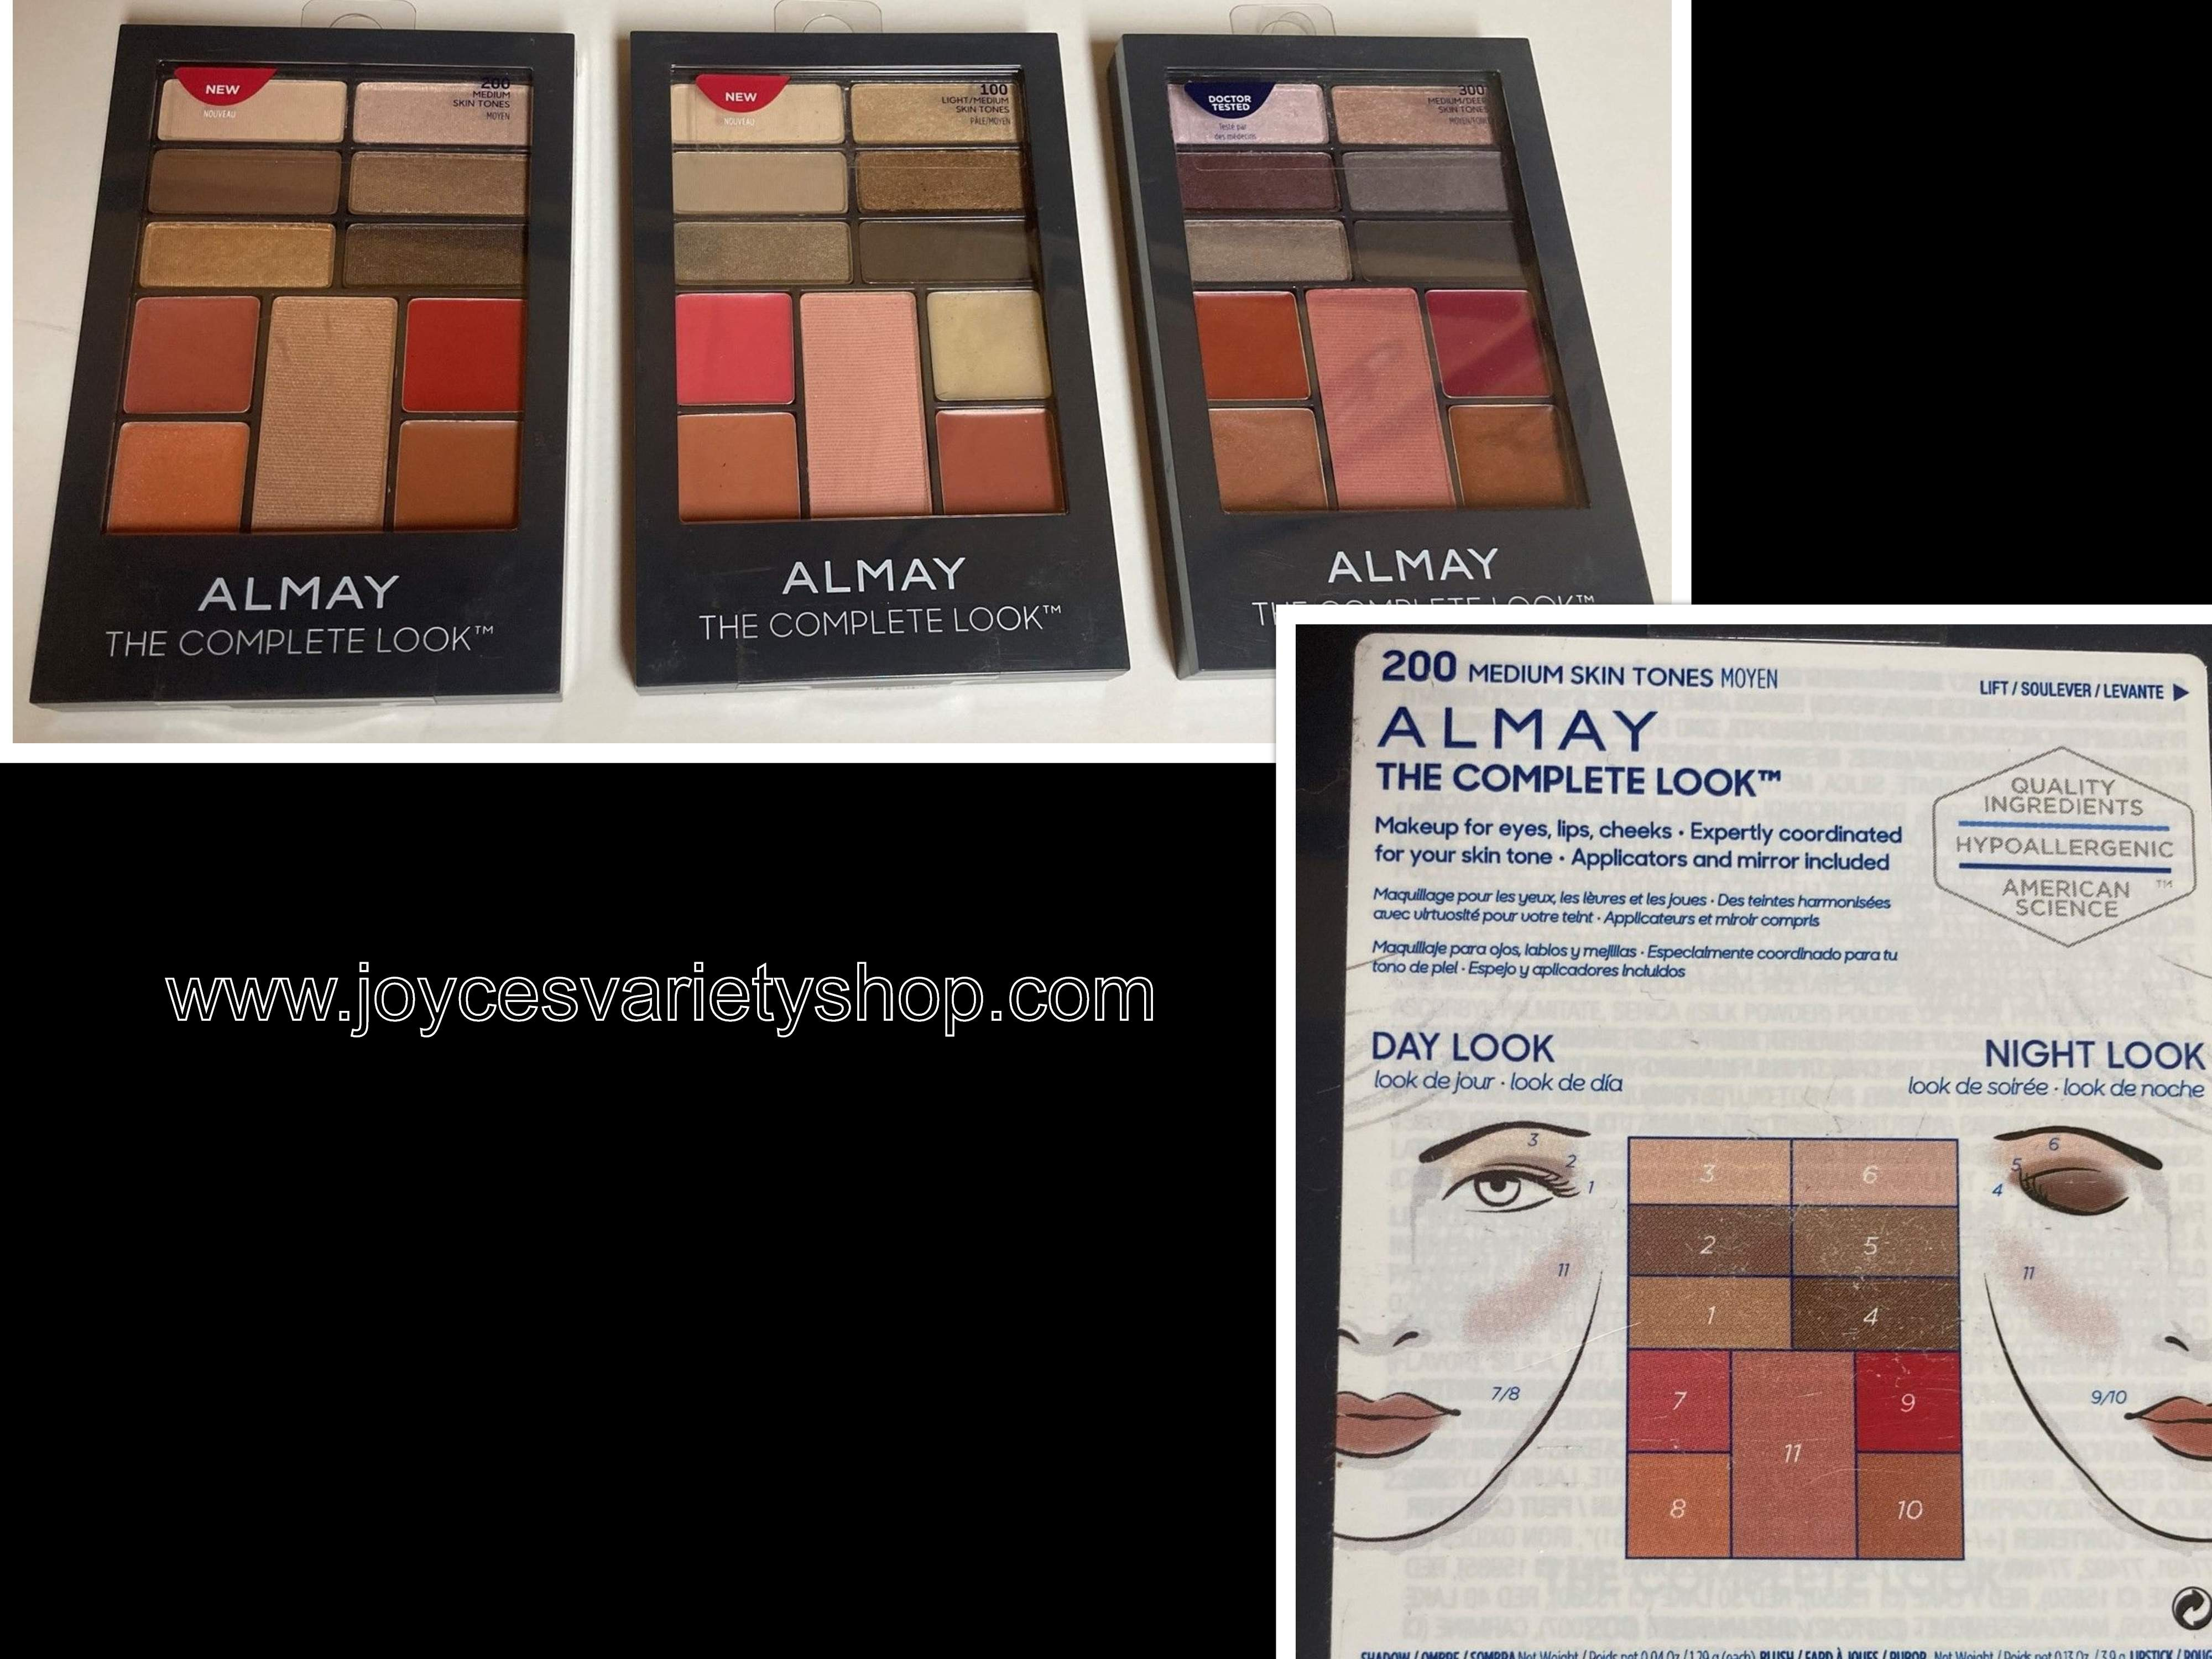 Almay The Complete Look Eyes Lips Cheeks Light Medium Deep Skin Tone Variations